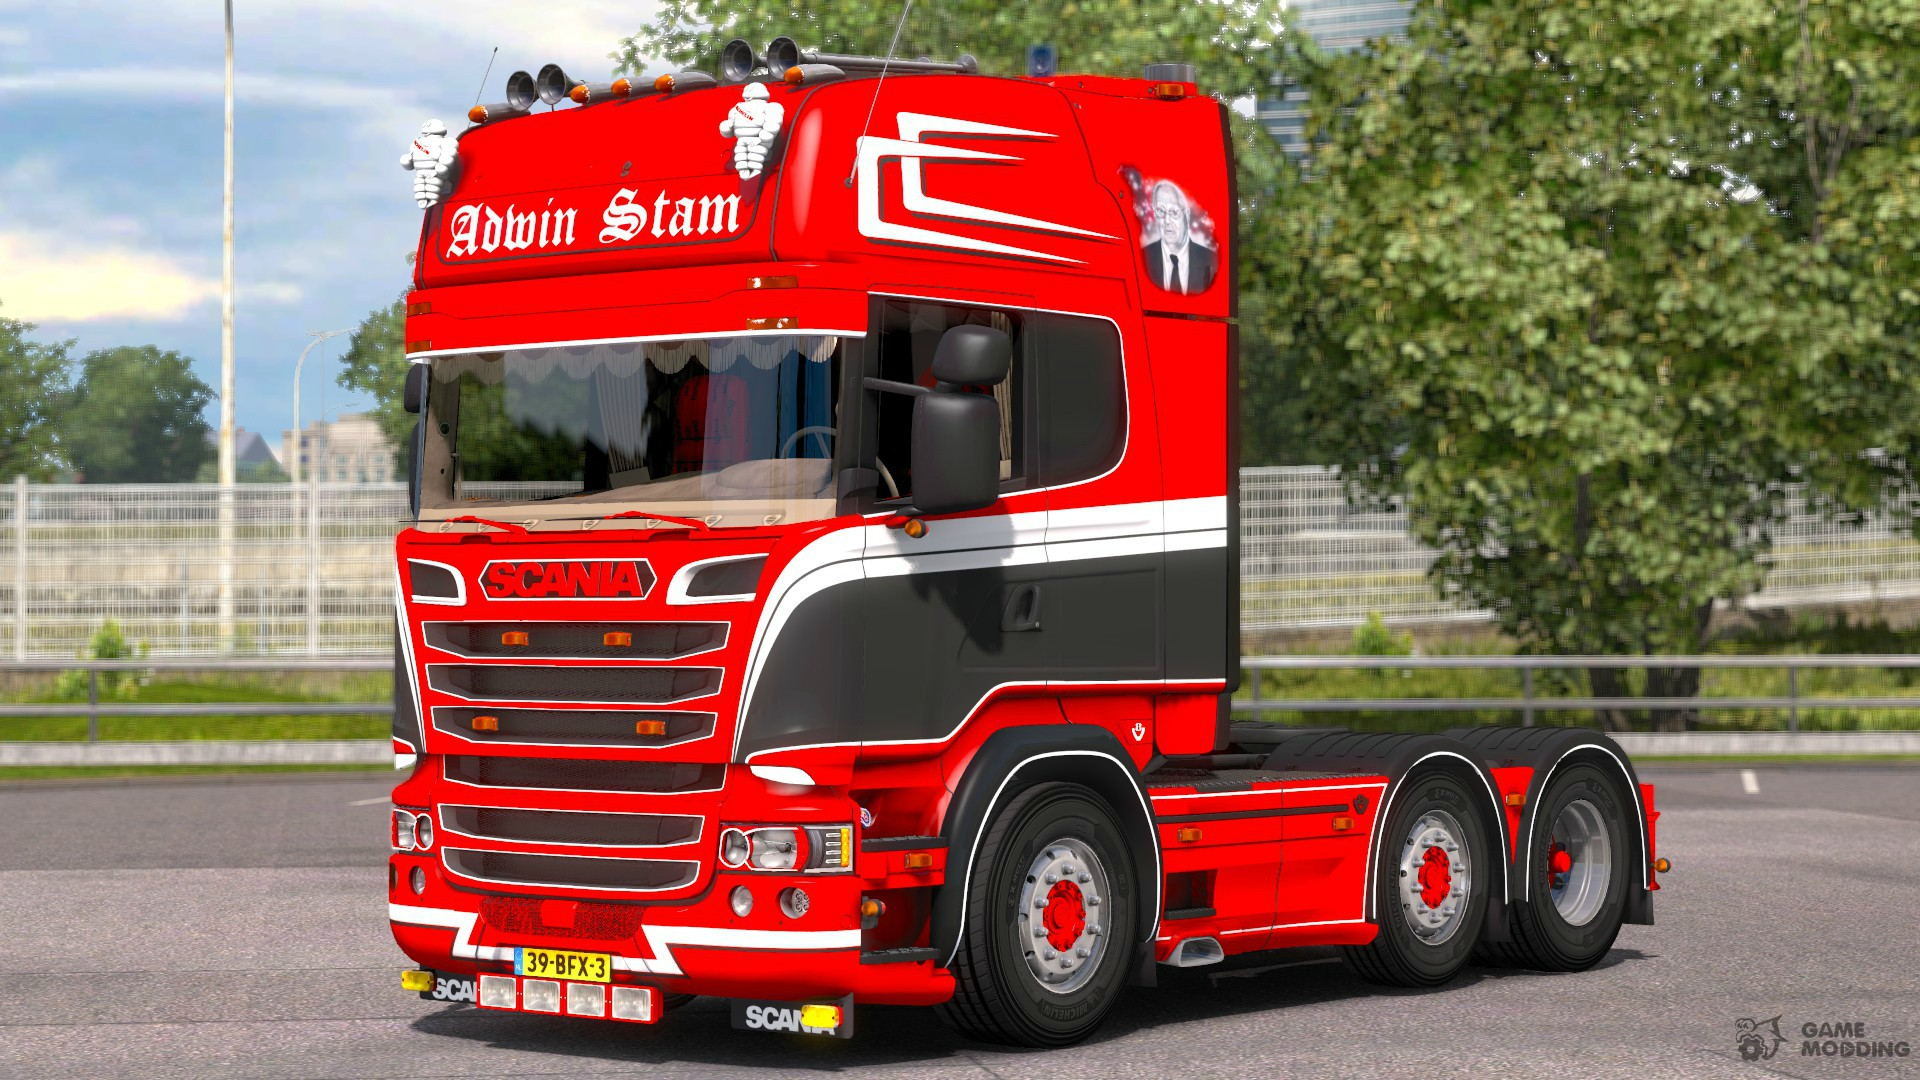 scania r520 adwin stam for euro truck simulator 2. Black Bedroom Furniture Sets. Home Design Ideas